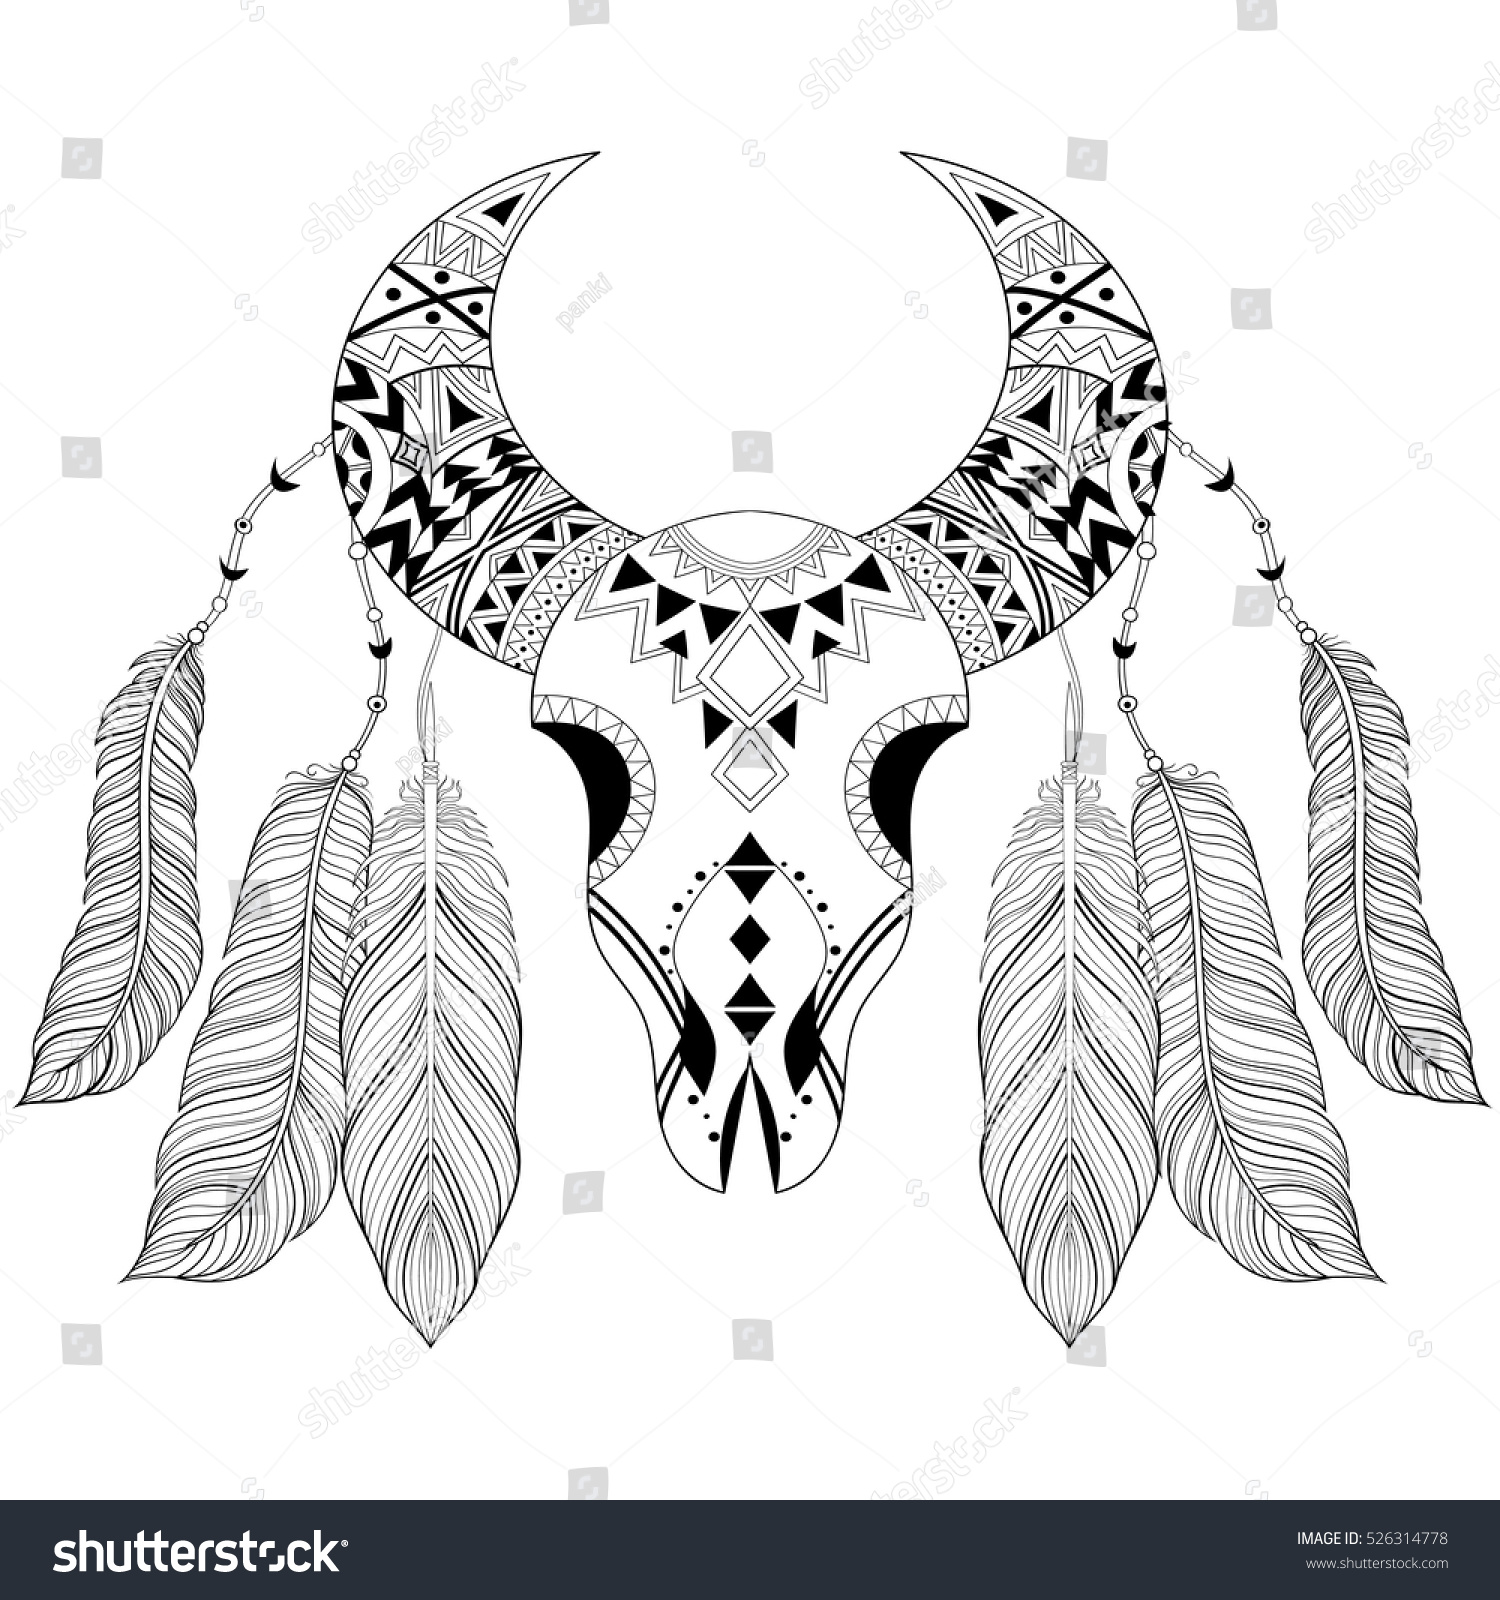 Zentangle Boho Animal Skull With Bird Feathers American Ethnic Vector Illustration For Adult Coloring Pages